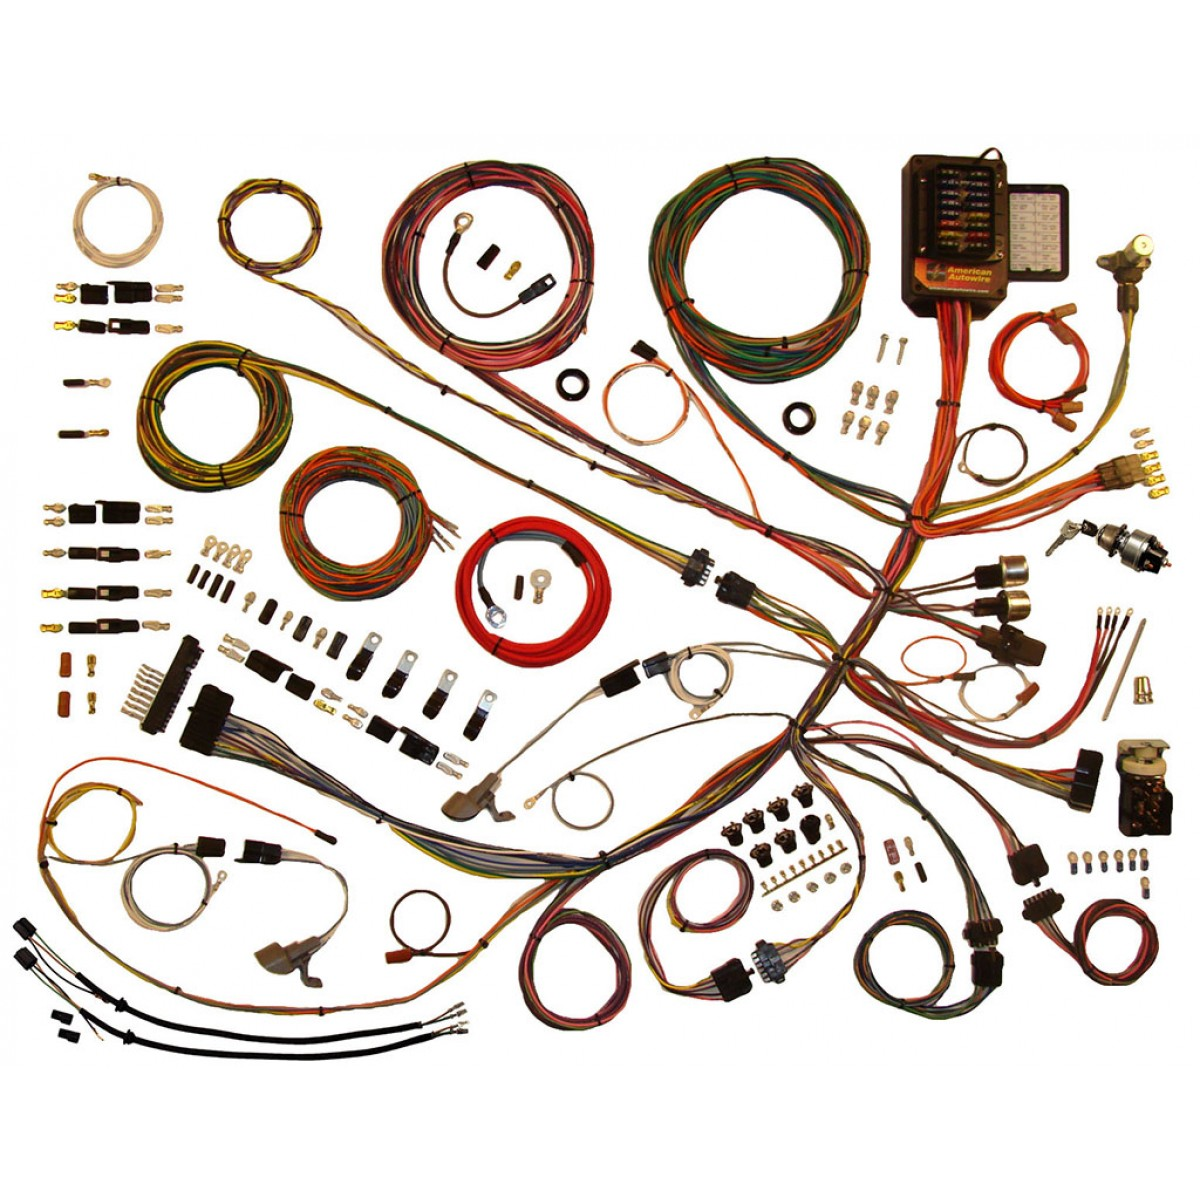 complete wiring harness kit 1953 1956 ford f100 part 510303 ford truck wiring harness f100 1953 1956 ford f100 wiring harness complete wiring harness kit ford wiring harness at metegol.co